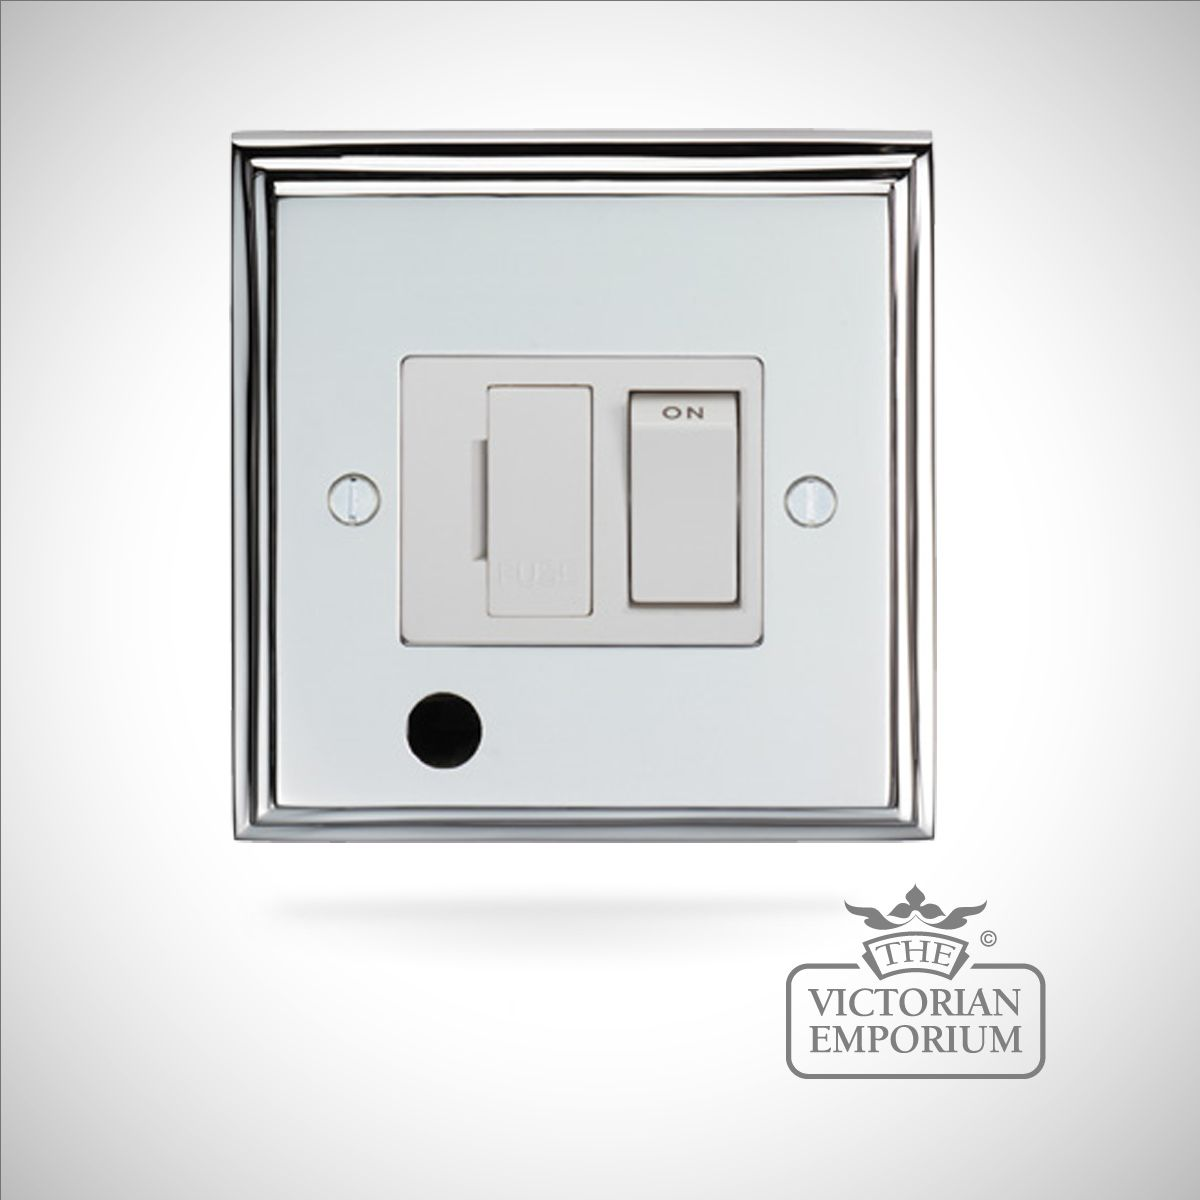 Chrome Light Switch Surround: Stepped 1 Gang 13Amp Switched Fuse Spur c/w Flex Outlet - brass or chrome,Lighting